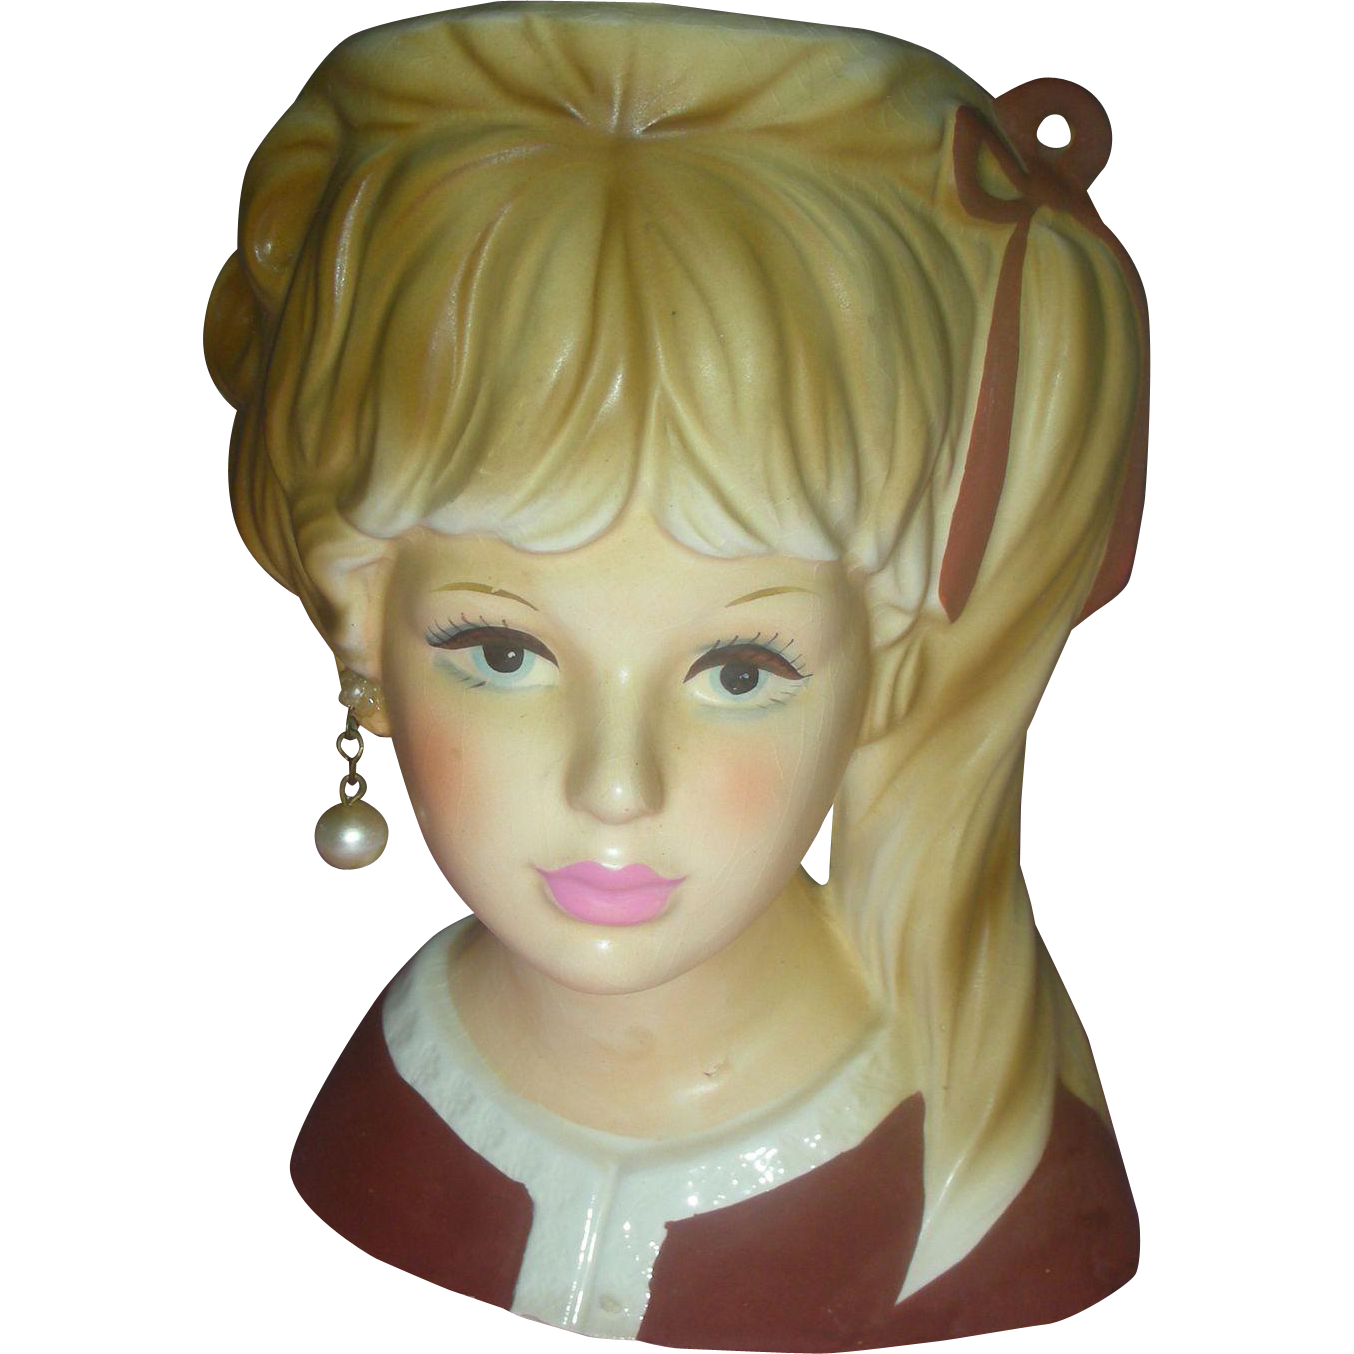 Vintage Enesco Head Vase Planter 5.5 inch Headvase pink Lips with Side Ponytail